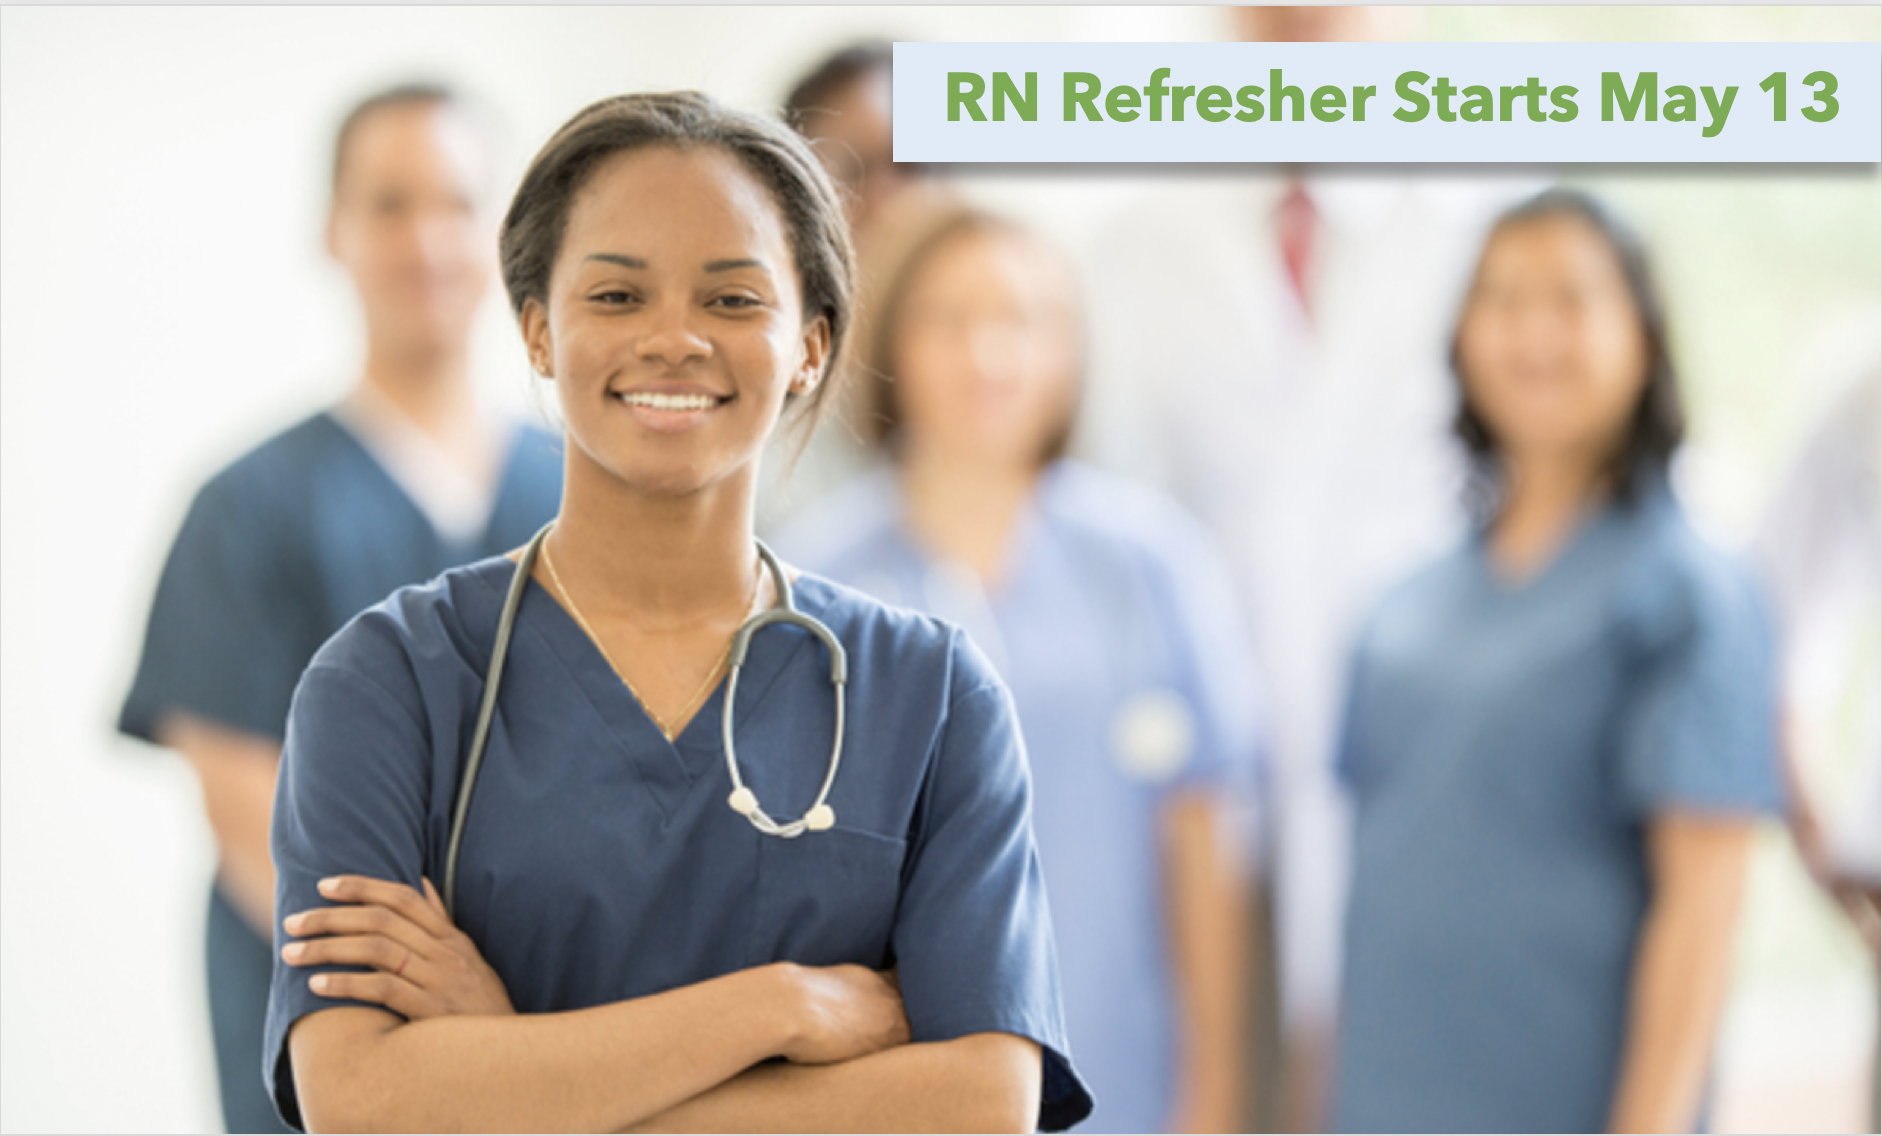 Our 12day course is for RN's who have been out of nursing